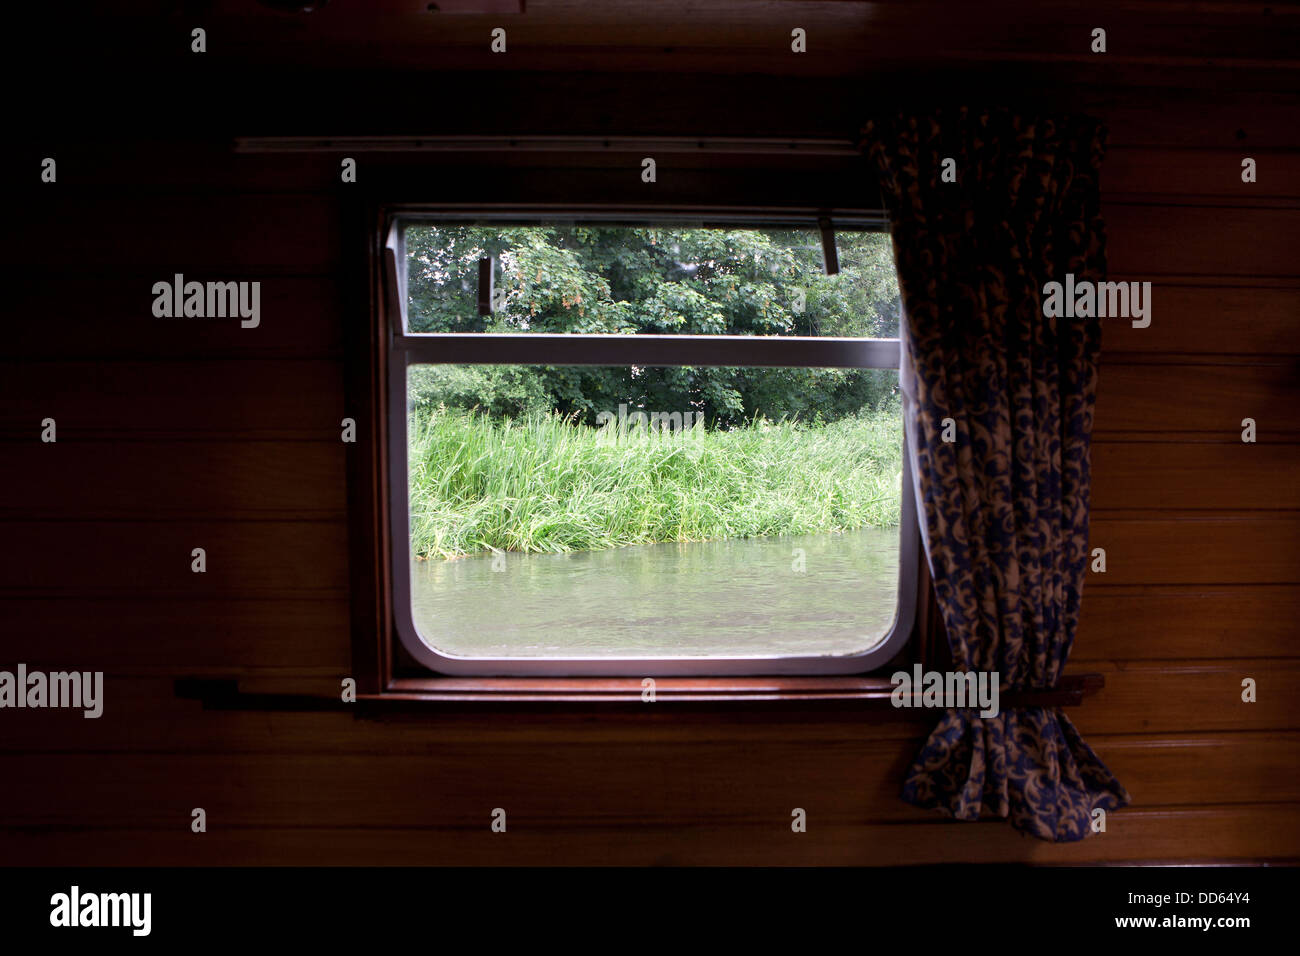 The view looking out of a window on a narrow boat that's floating on the River Kennet and Avon, Berkshire, England. - Stock Image